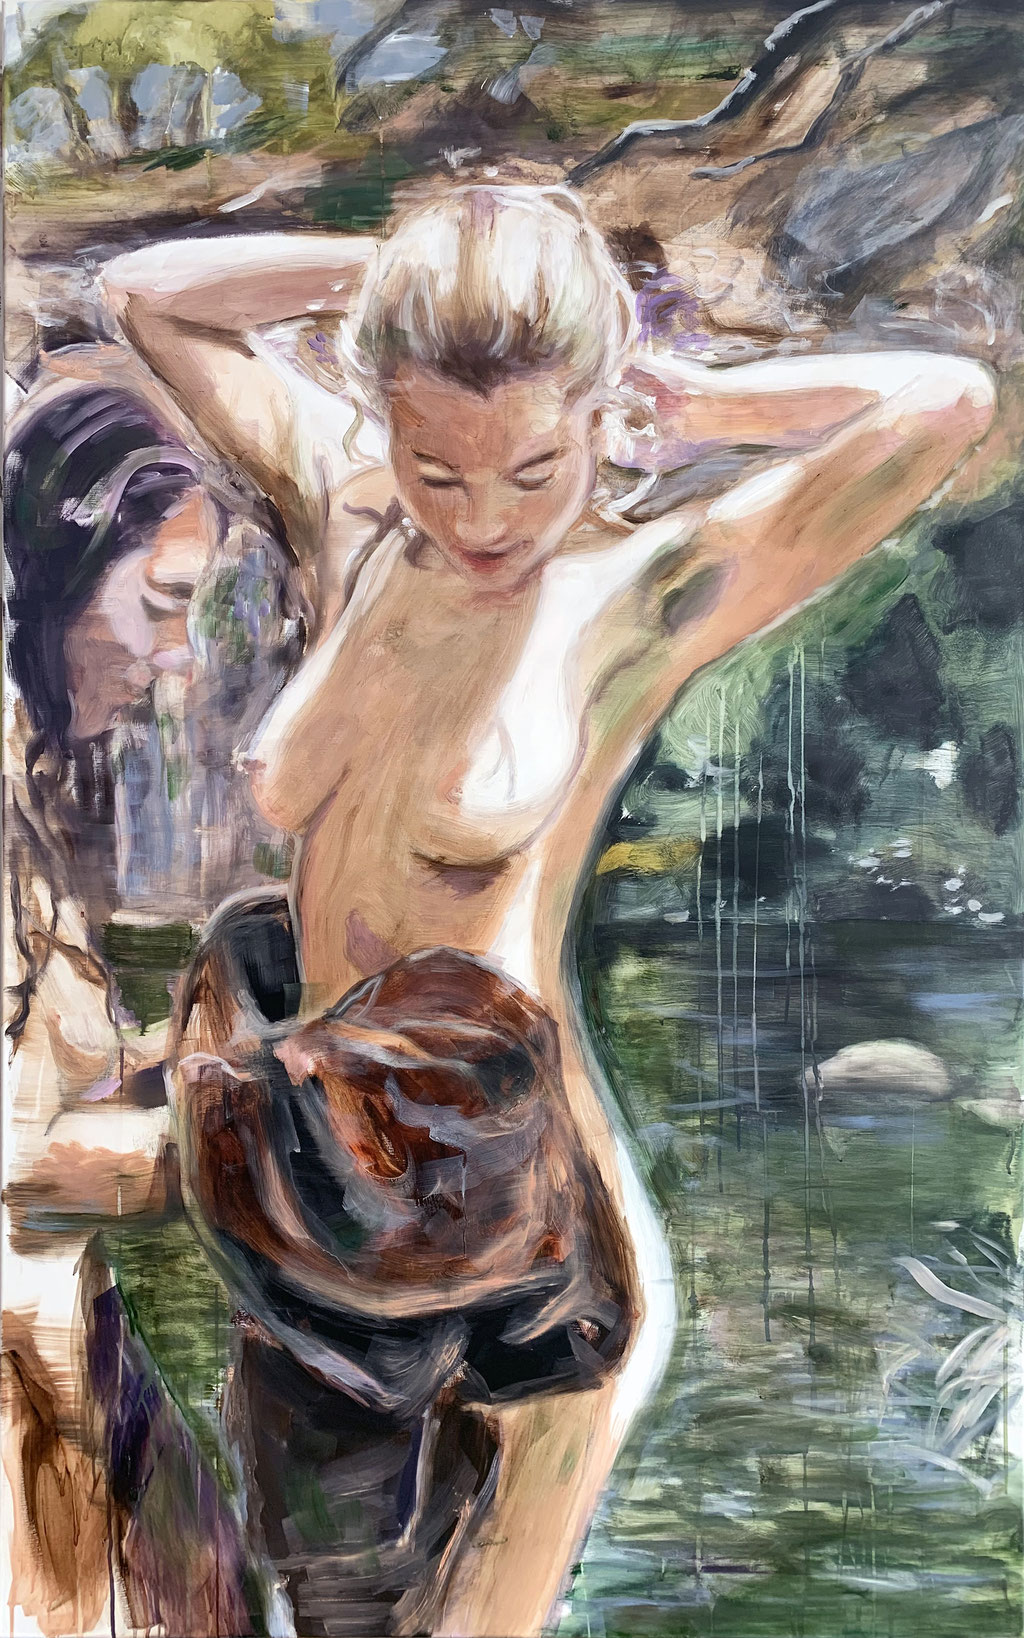 towel_2019_160x100cm_oil on canvas